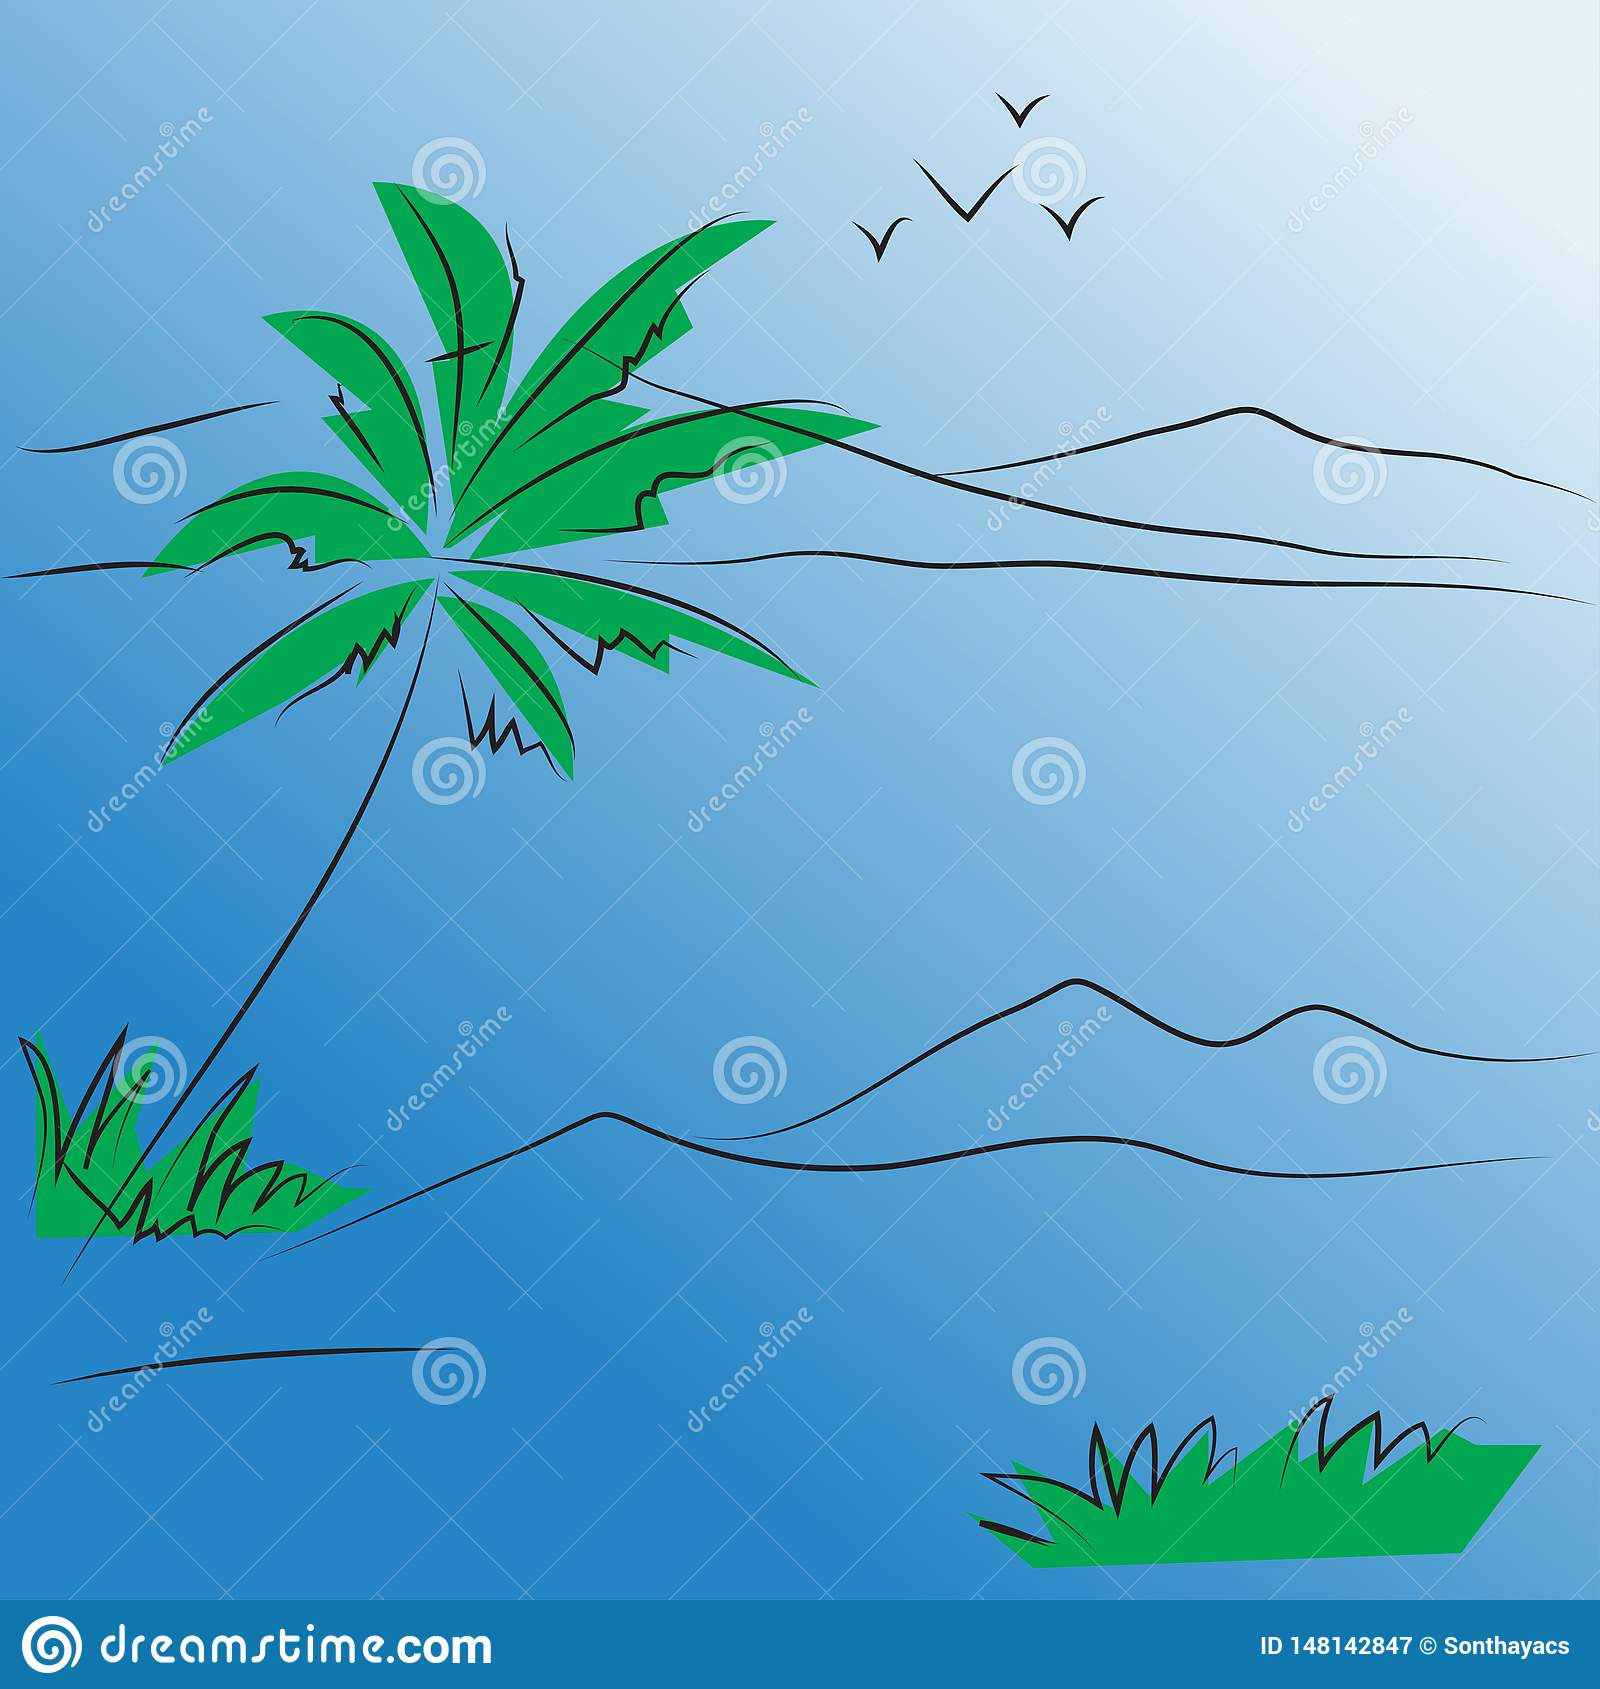 Abstract background seascape vector tree and mountain